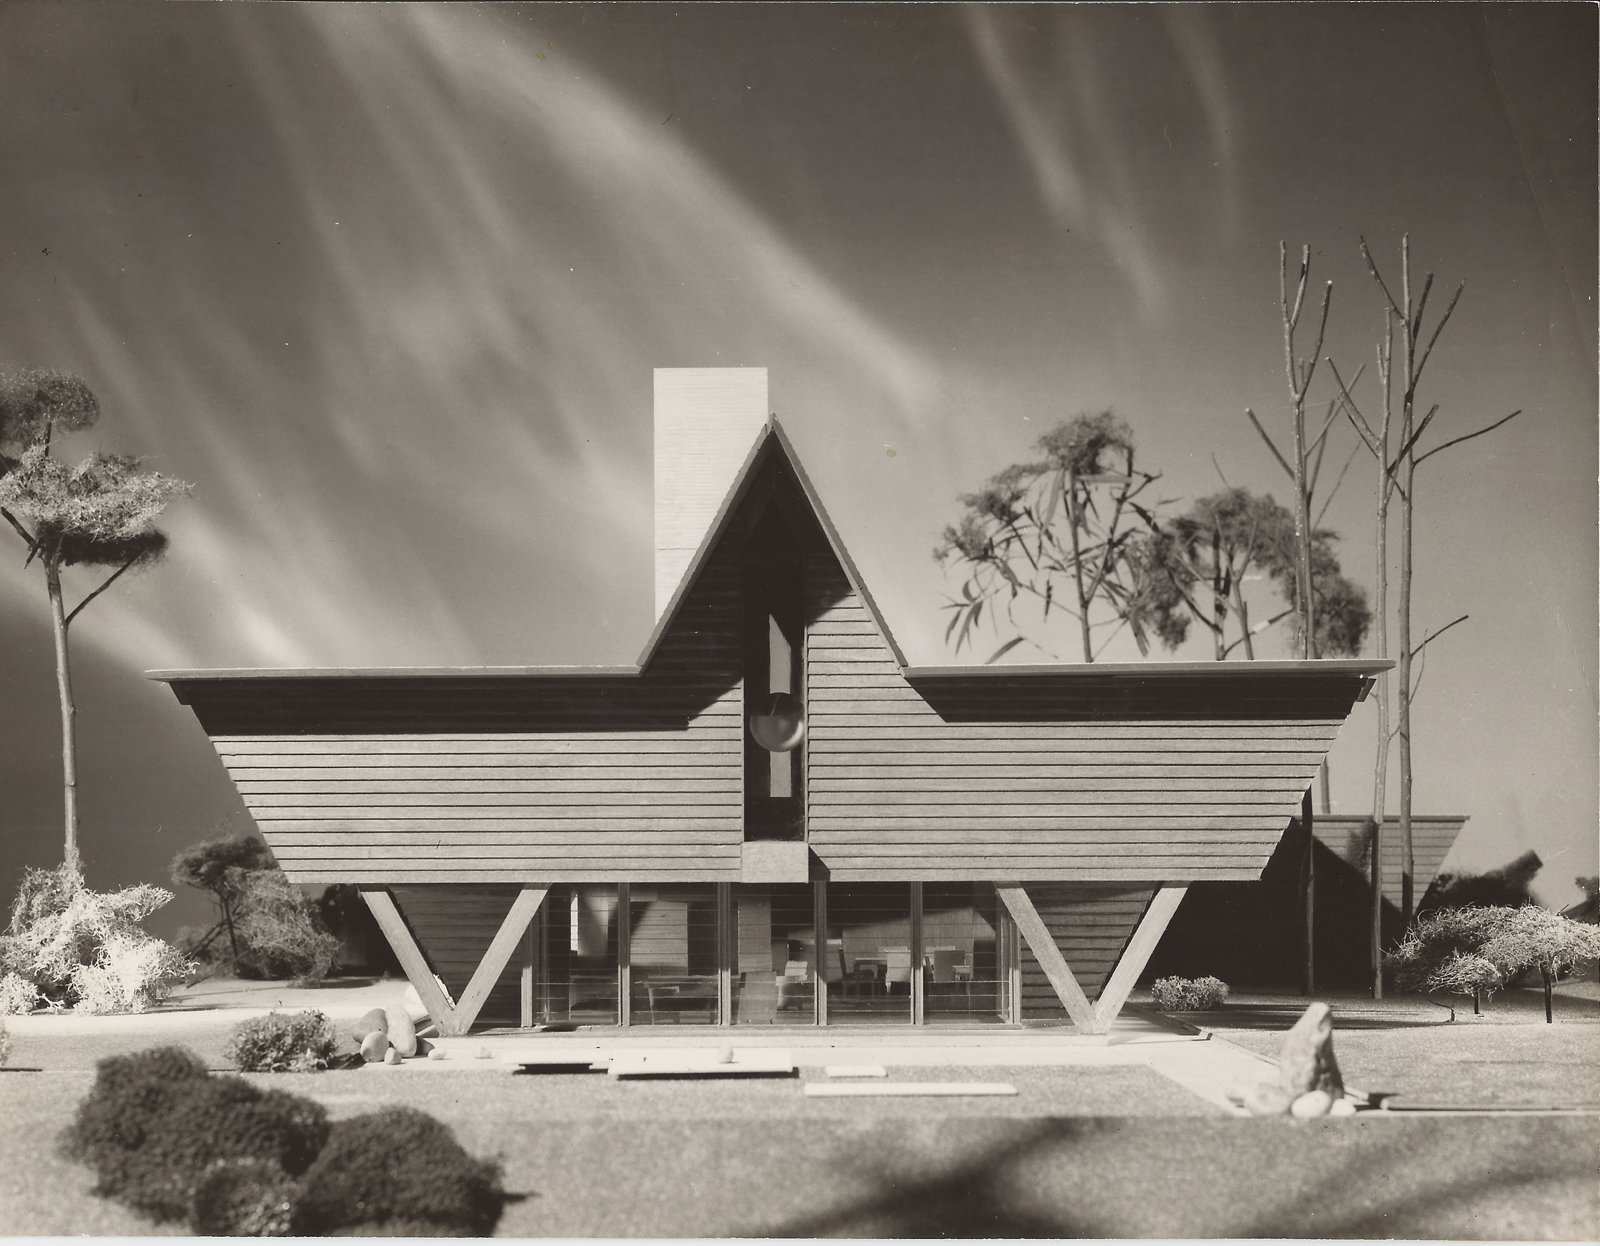 Dow's idea for his W-Frame house exists in model form (here) at the Down Home and Studio and a variant of the structure was built as the Mills Summer Home. Hometown Hero - Photo 9 of 28